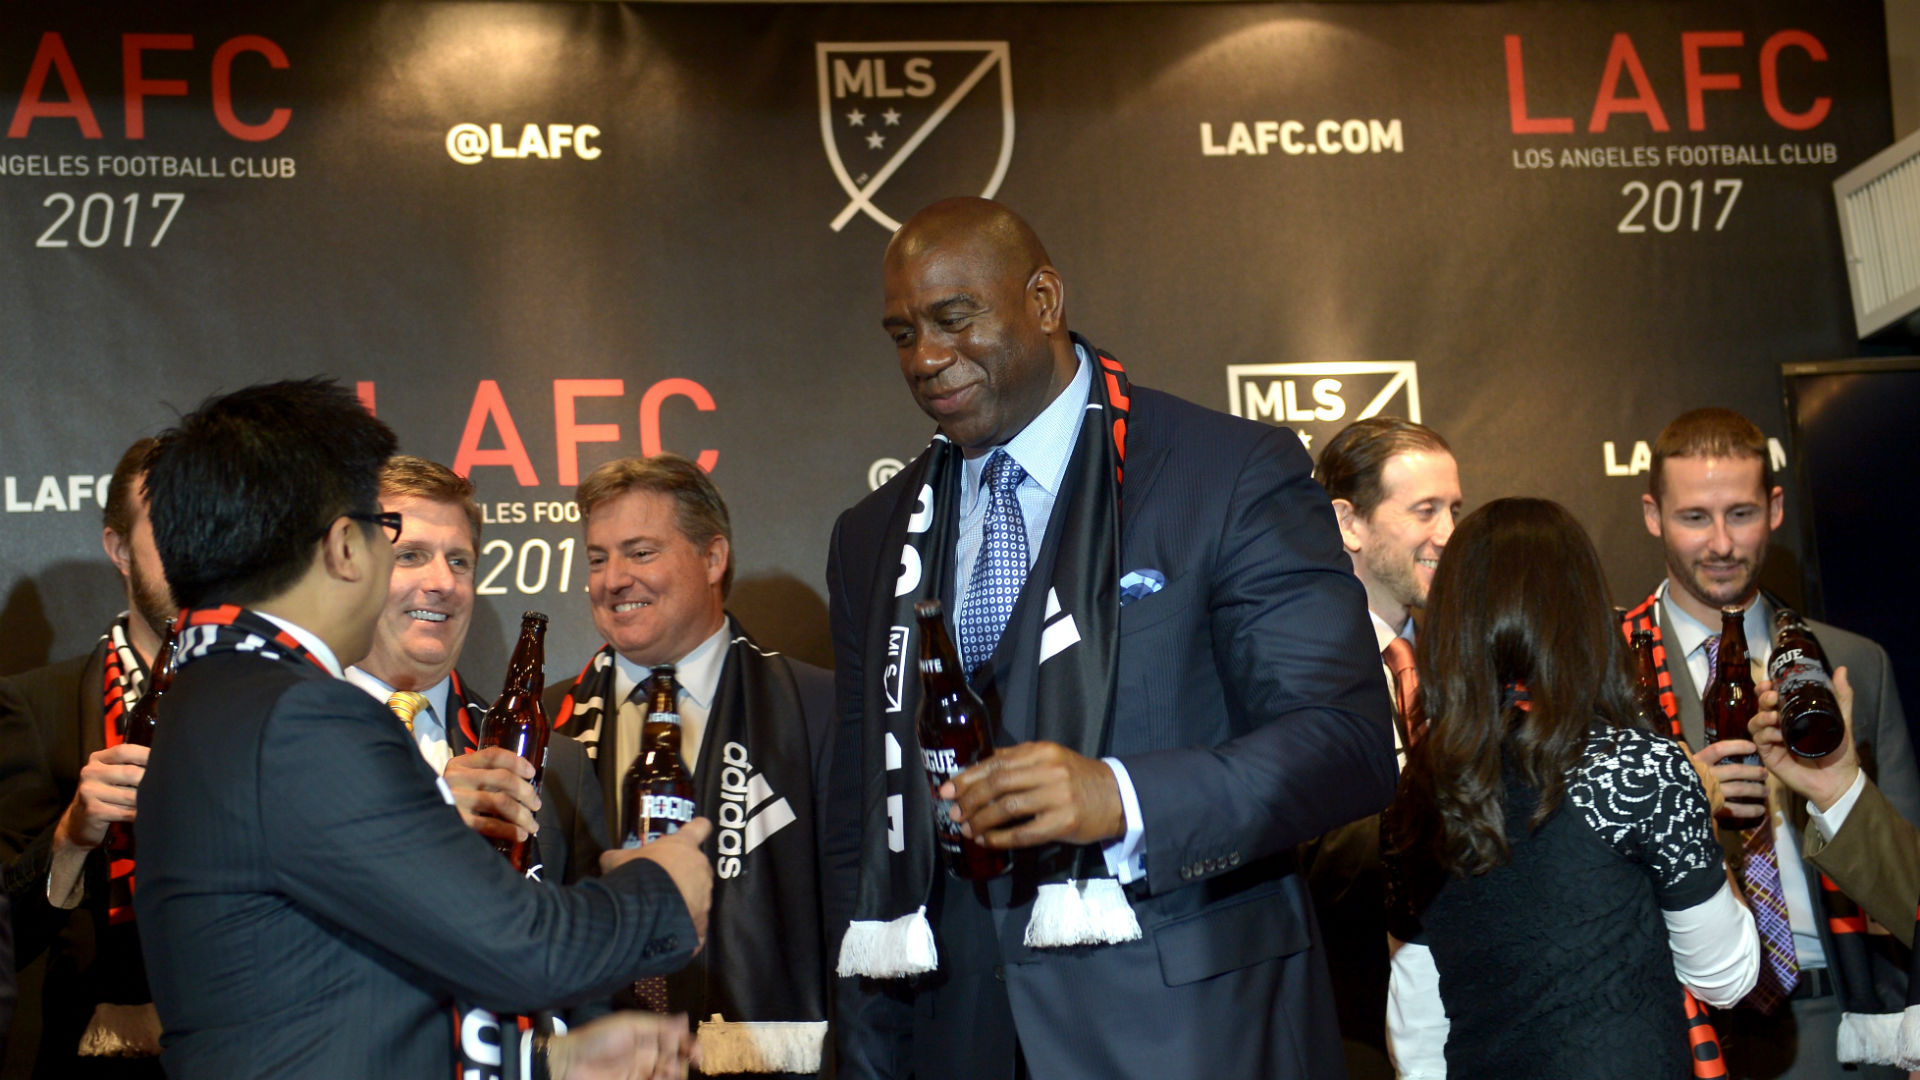 LAFC announces multi-year broadcast partnership with YouTube TV